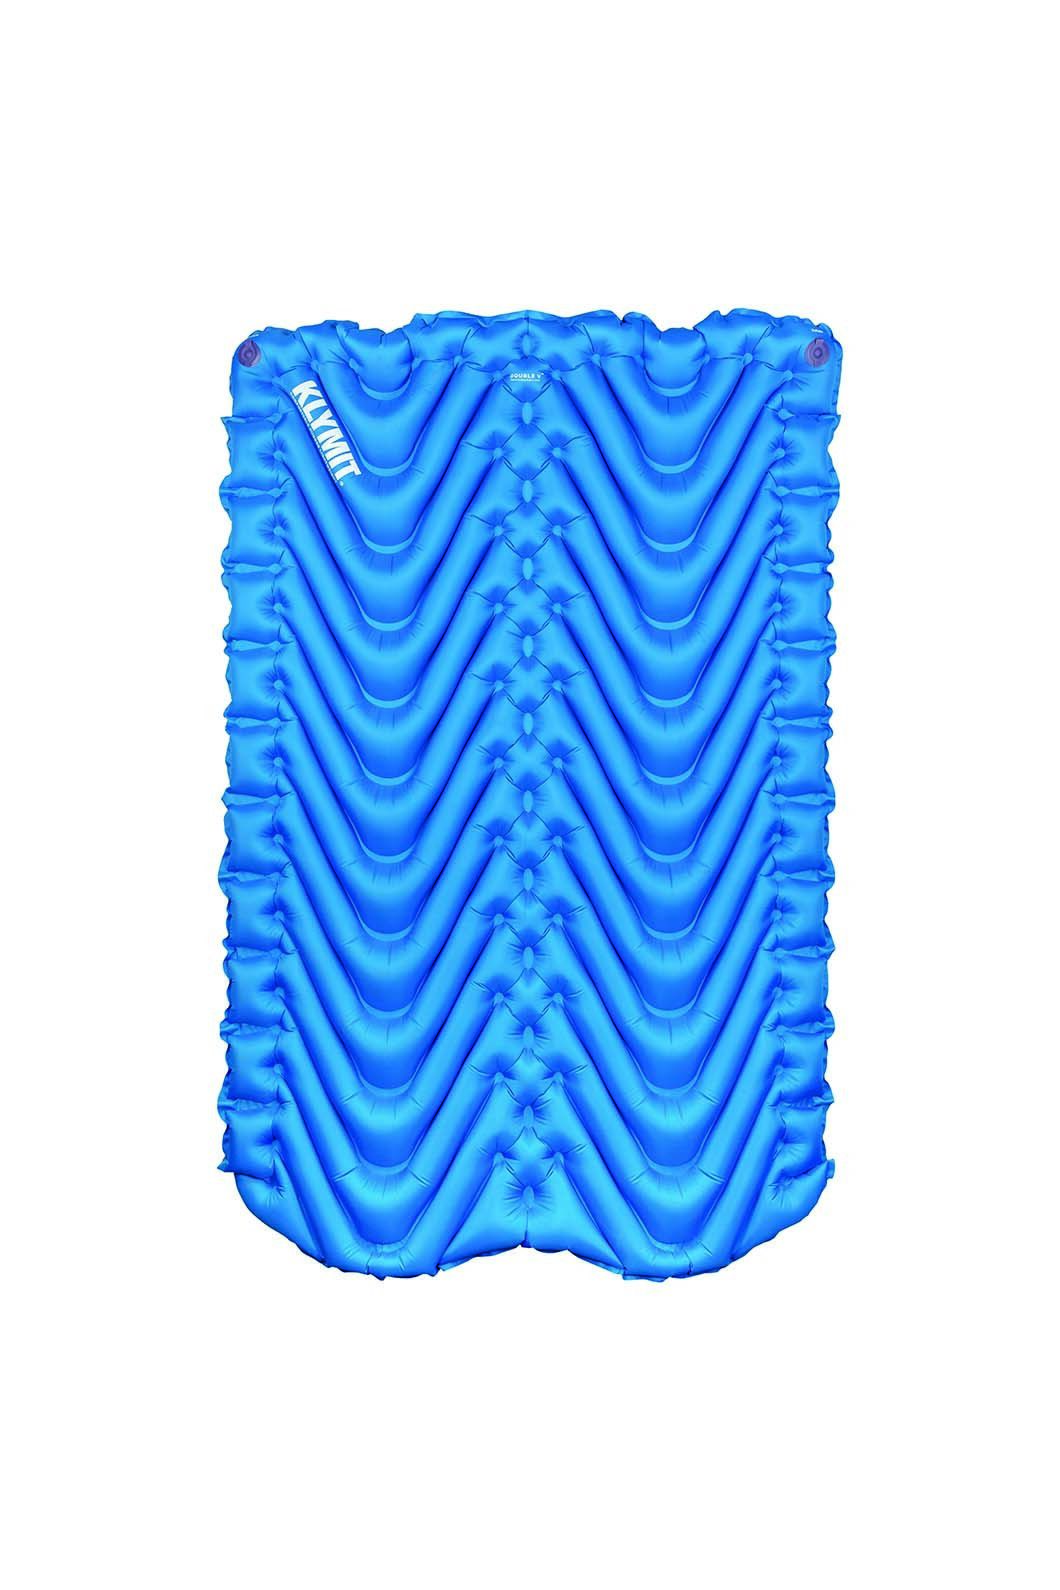 Klymit Double V Inflatable Mat, None, hi-res